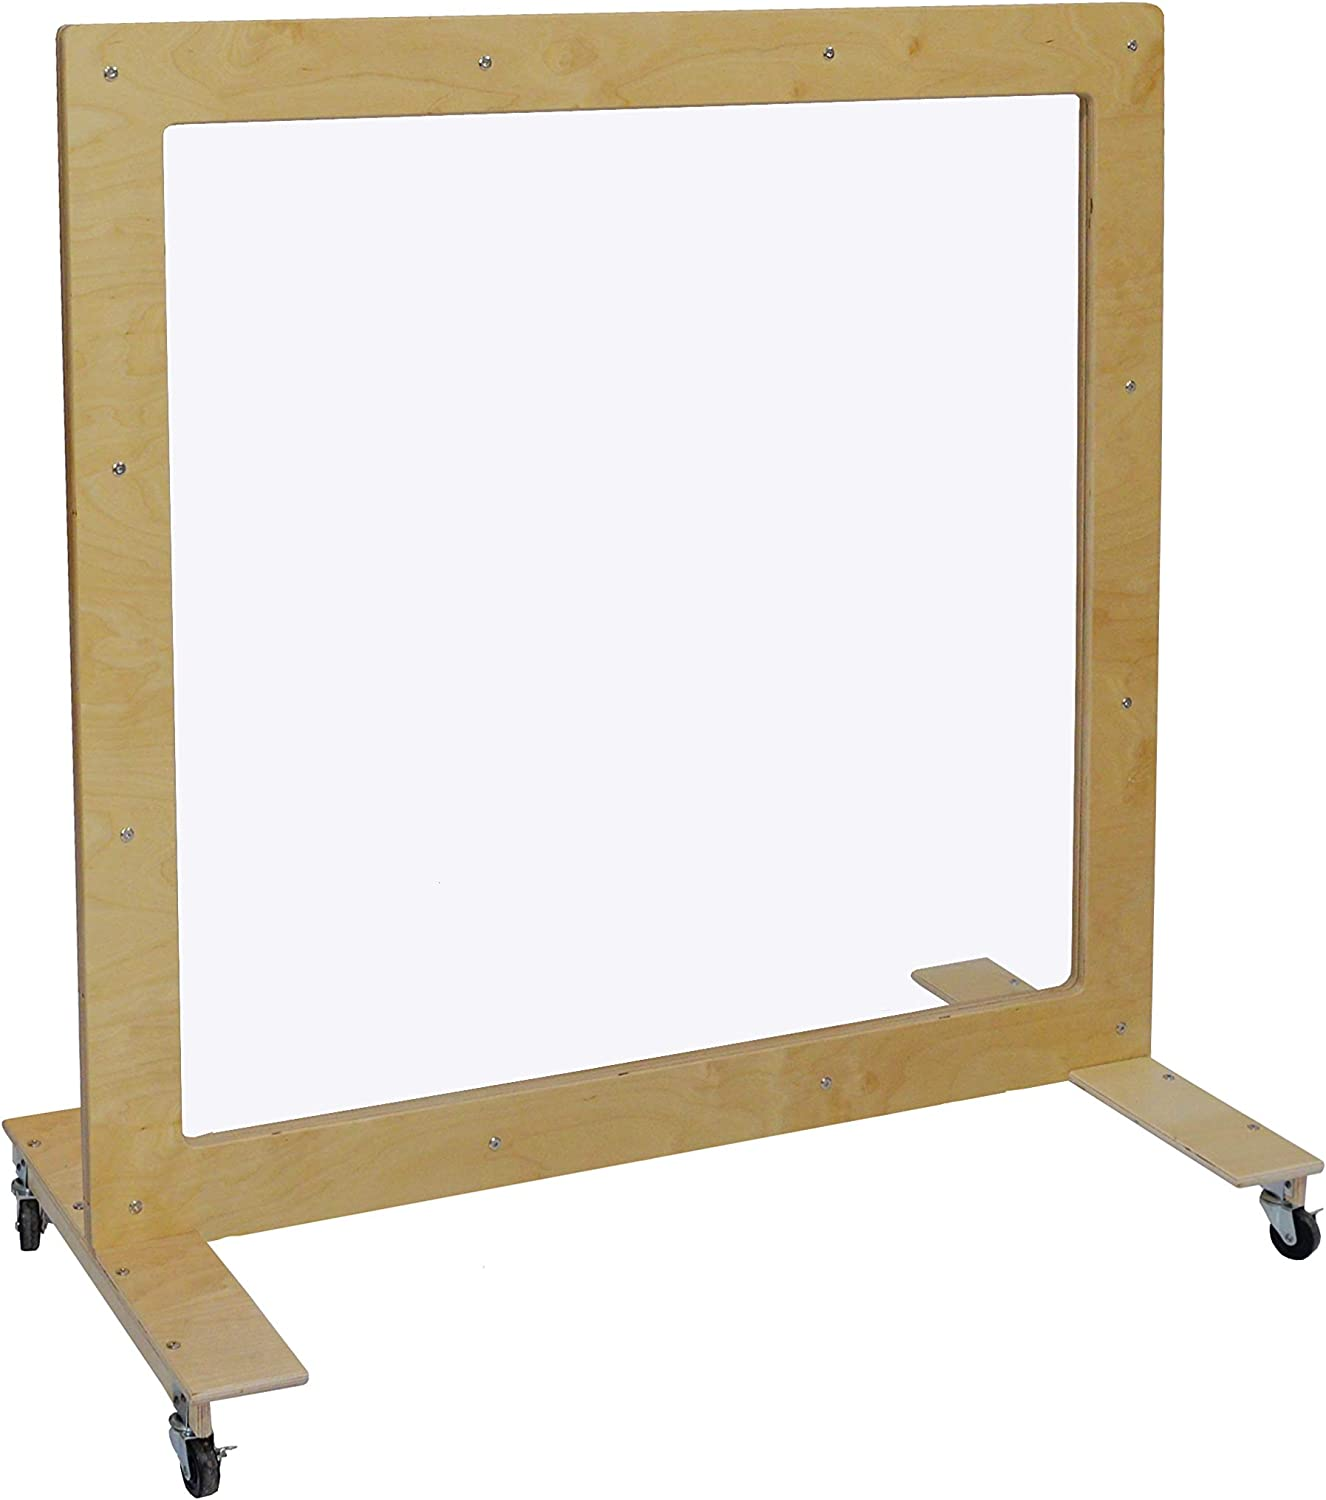 """Wood Designs Mobile See-Thru Room Divider 48""""H x 48""""W, Scratch & Shatter Resistant Clear Partition, Can be Used as Dry Erase Board for Office, School & Home"""